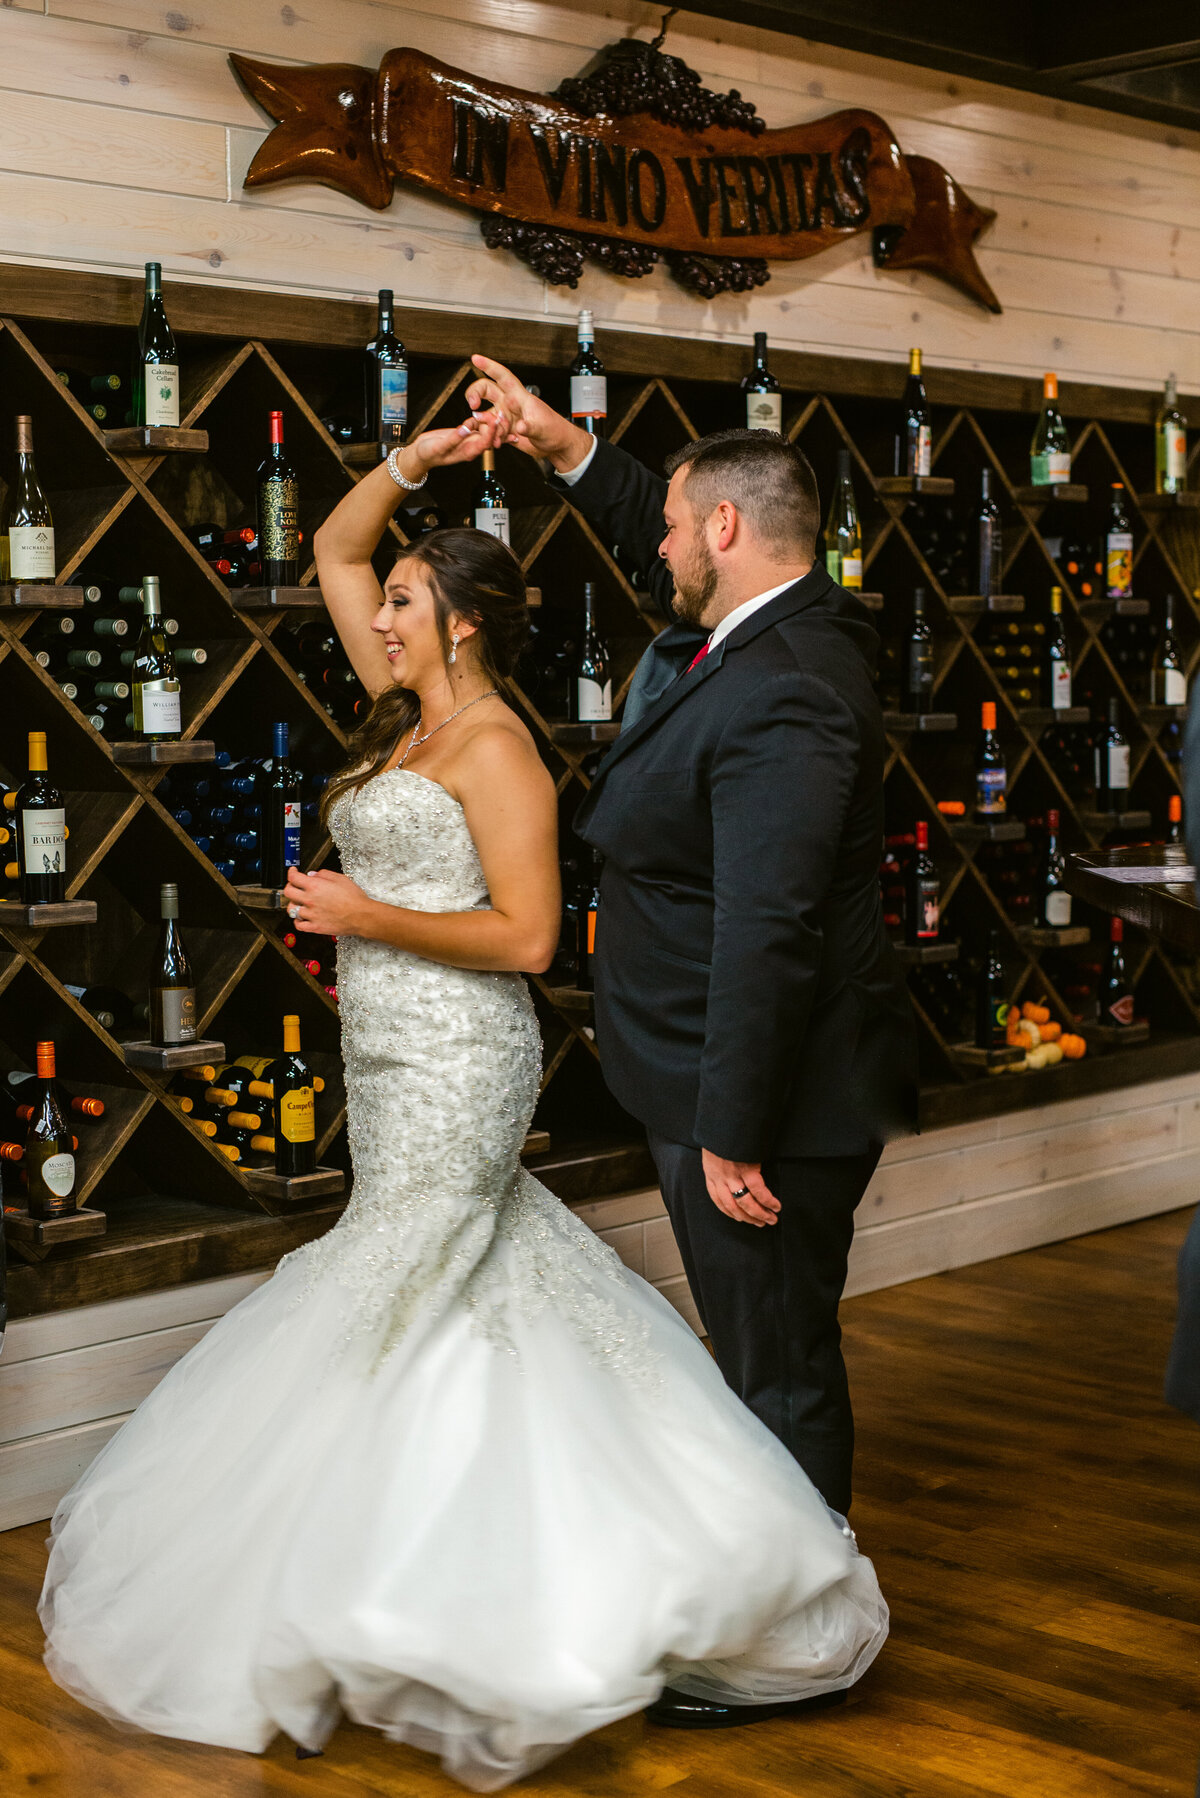 Bride and Groom dancing in the aisle of a wine store.